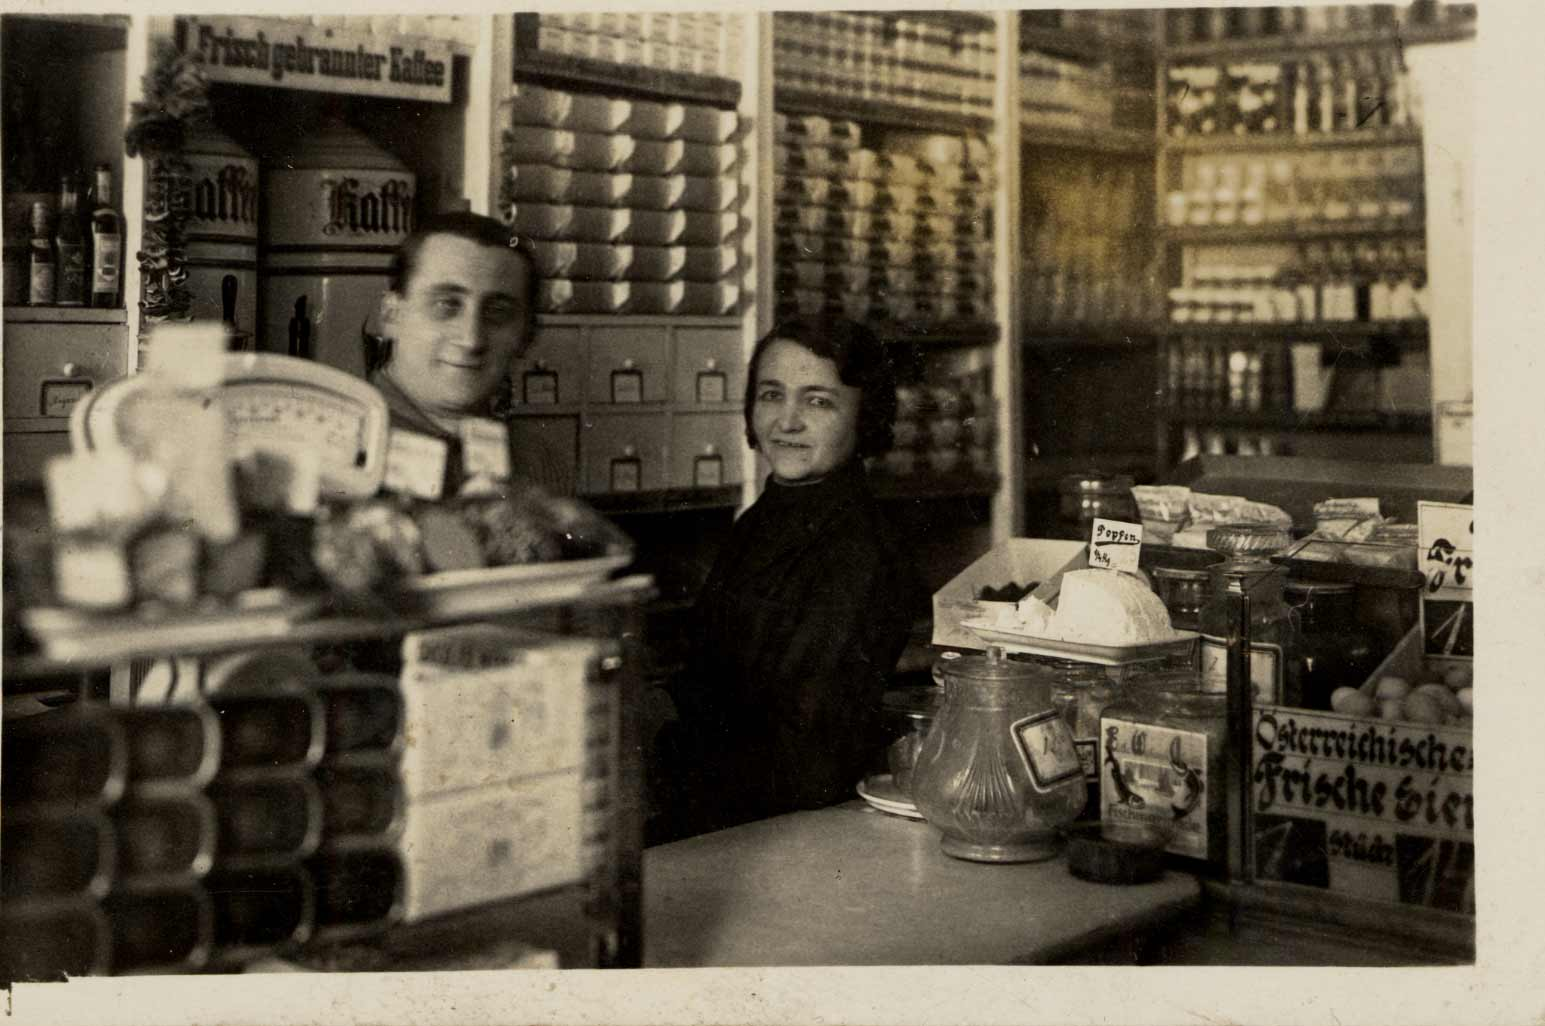 Salomon and Sara Heiss in their grocery store, Vienna, Austria, 1933.